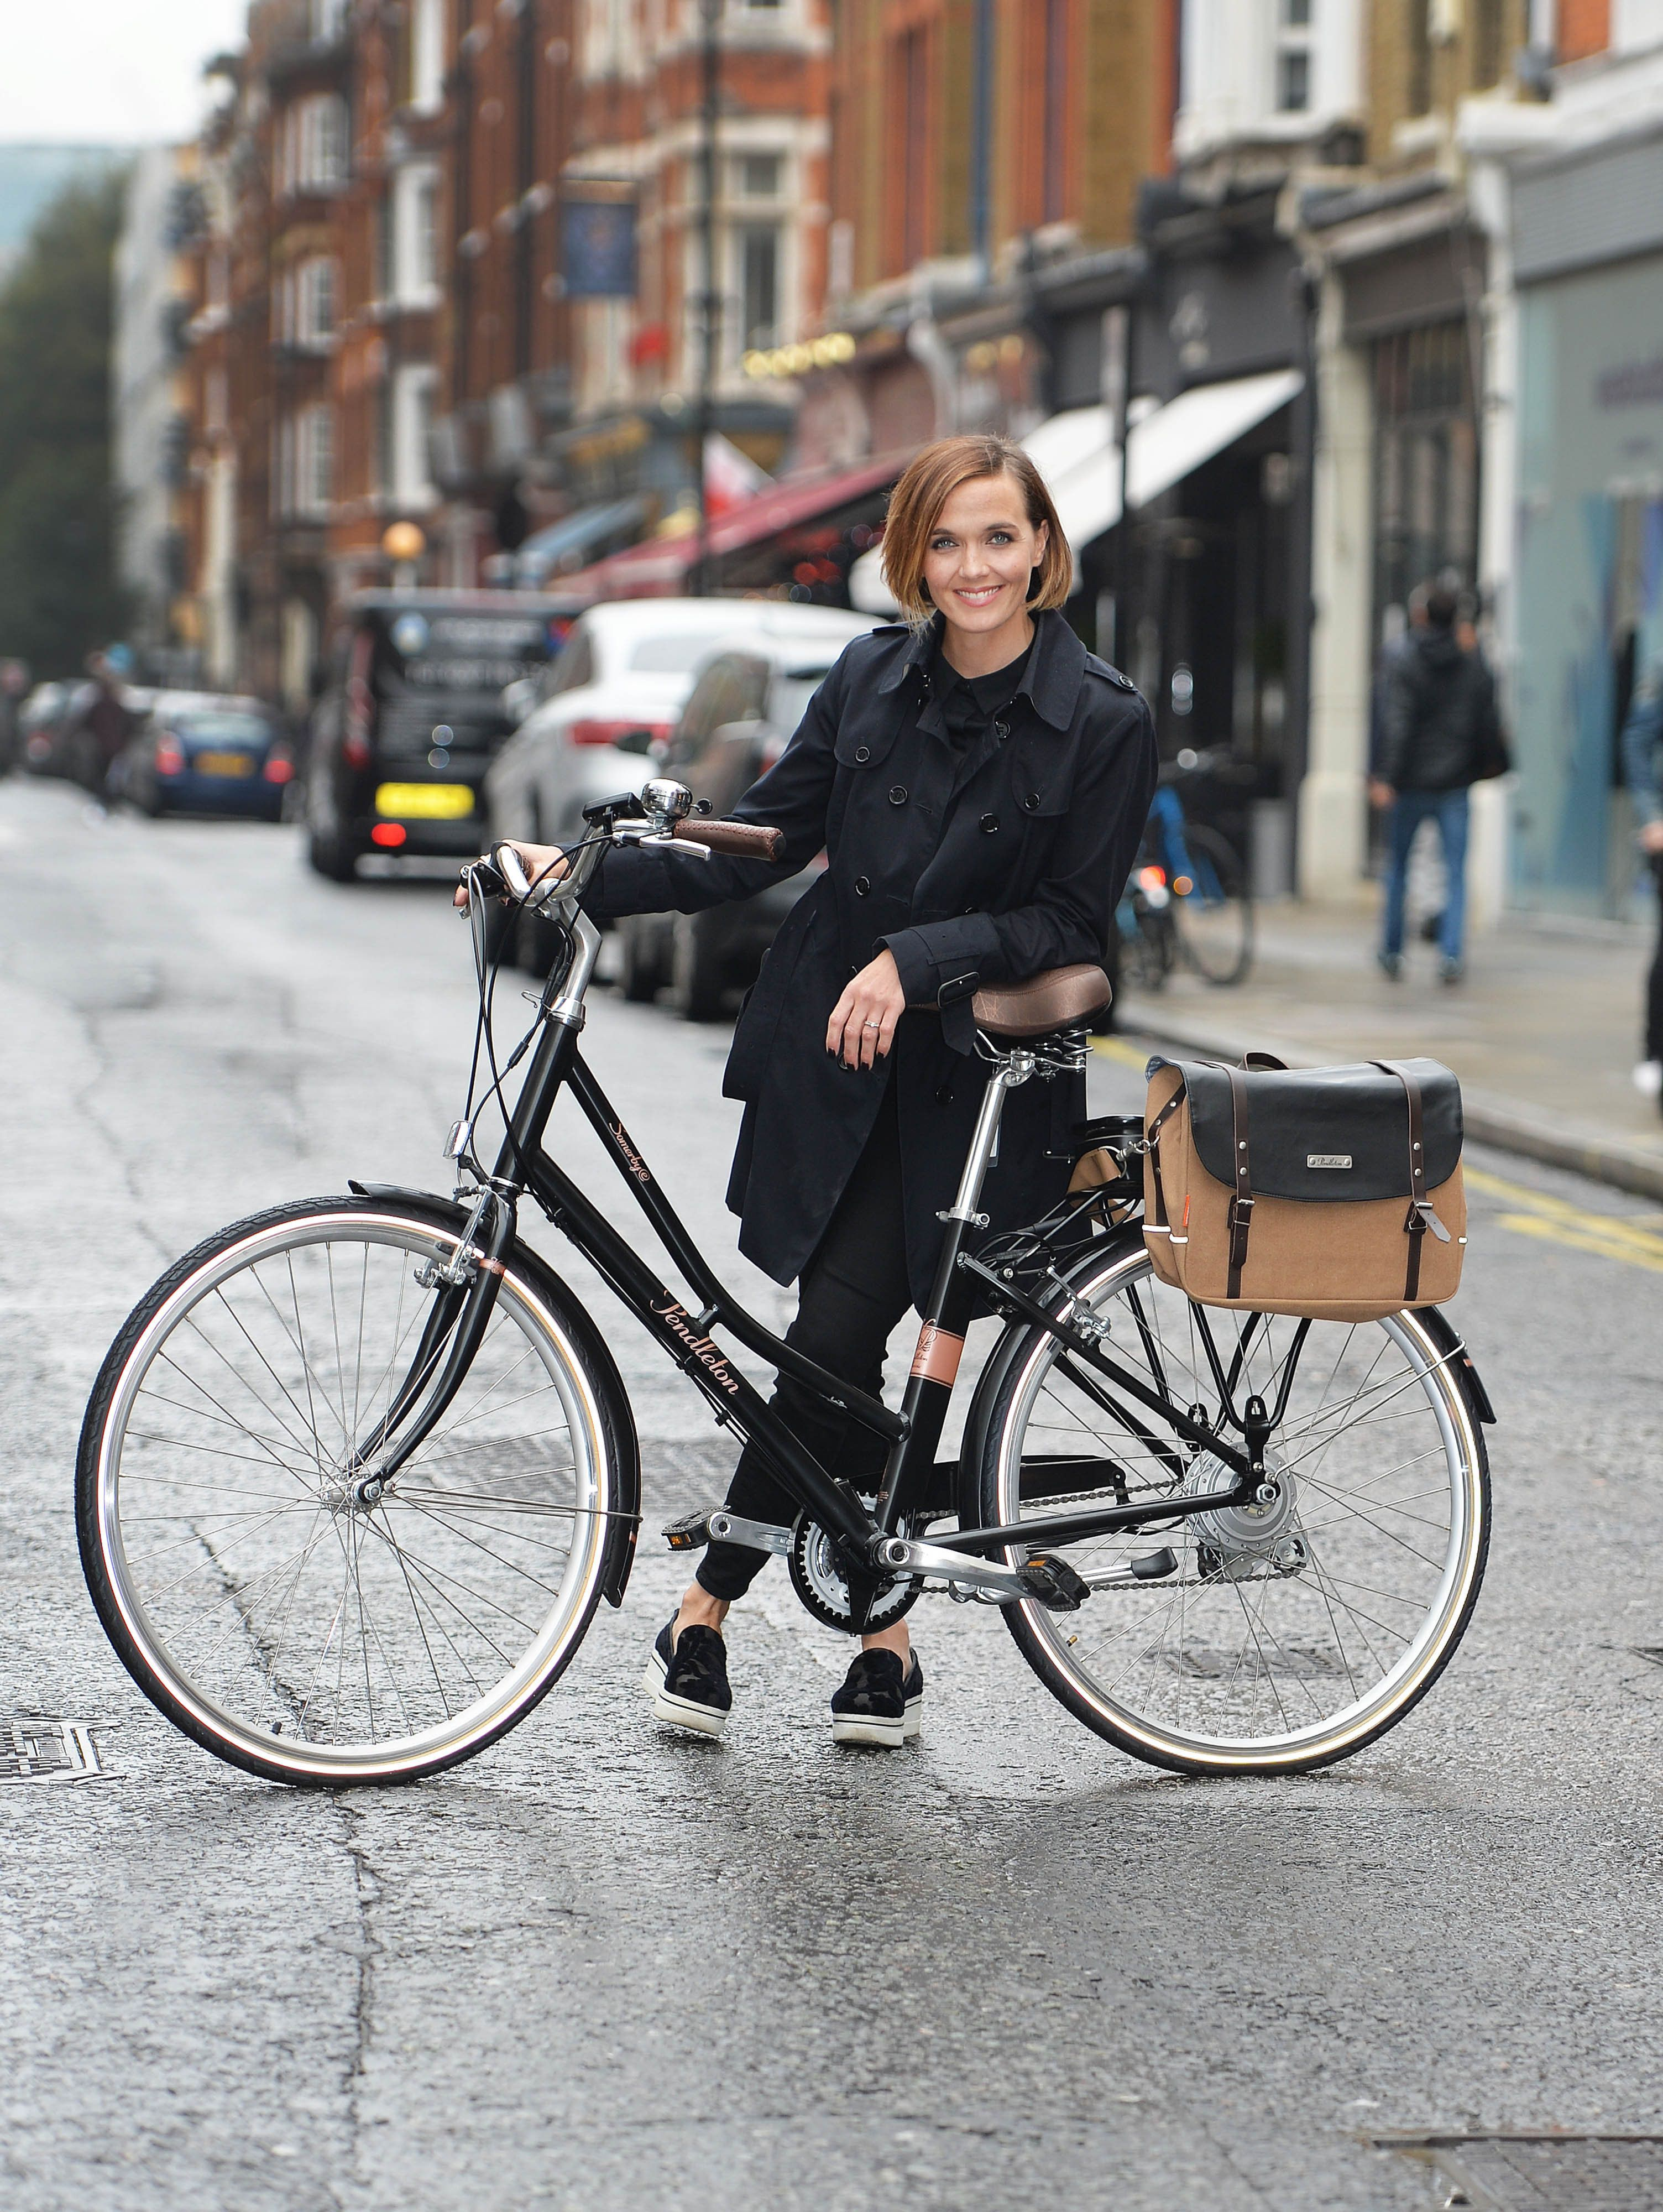 Victoria Pendleton Shares Experience Of Depression: 'I've Never Felt So Overwhelmed With